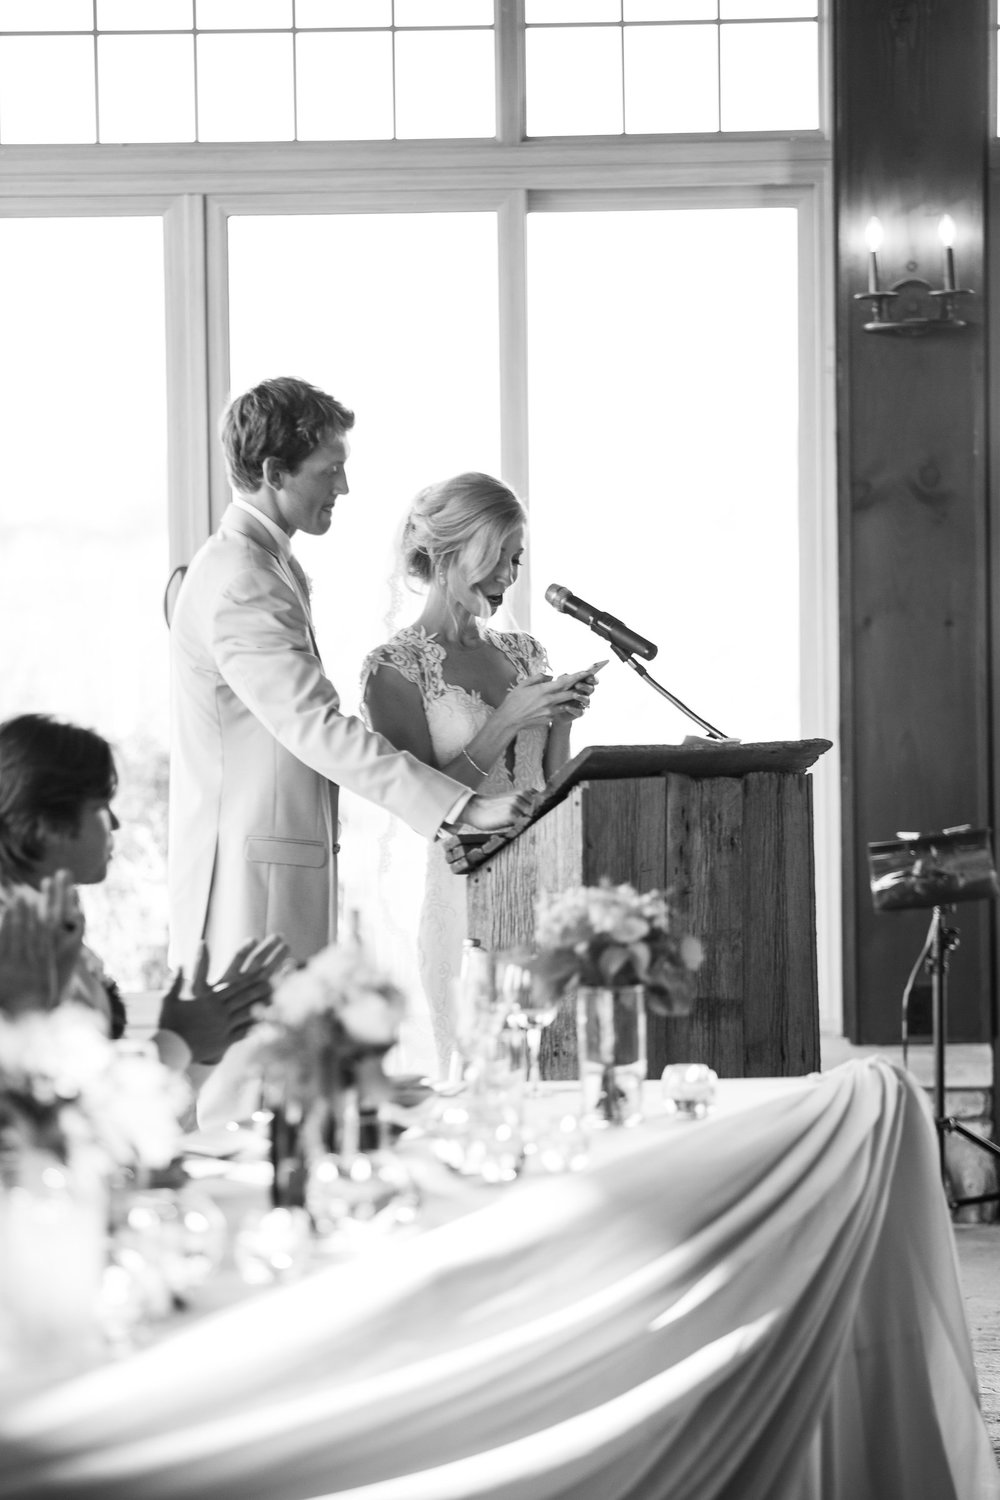 GarneauWeddingReception©ASP-213.jpg